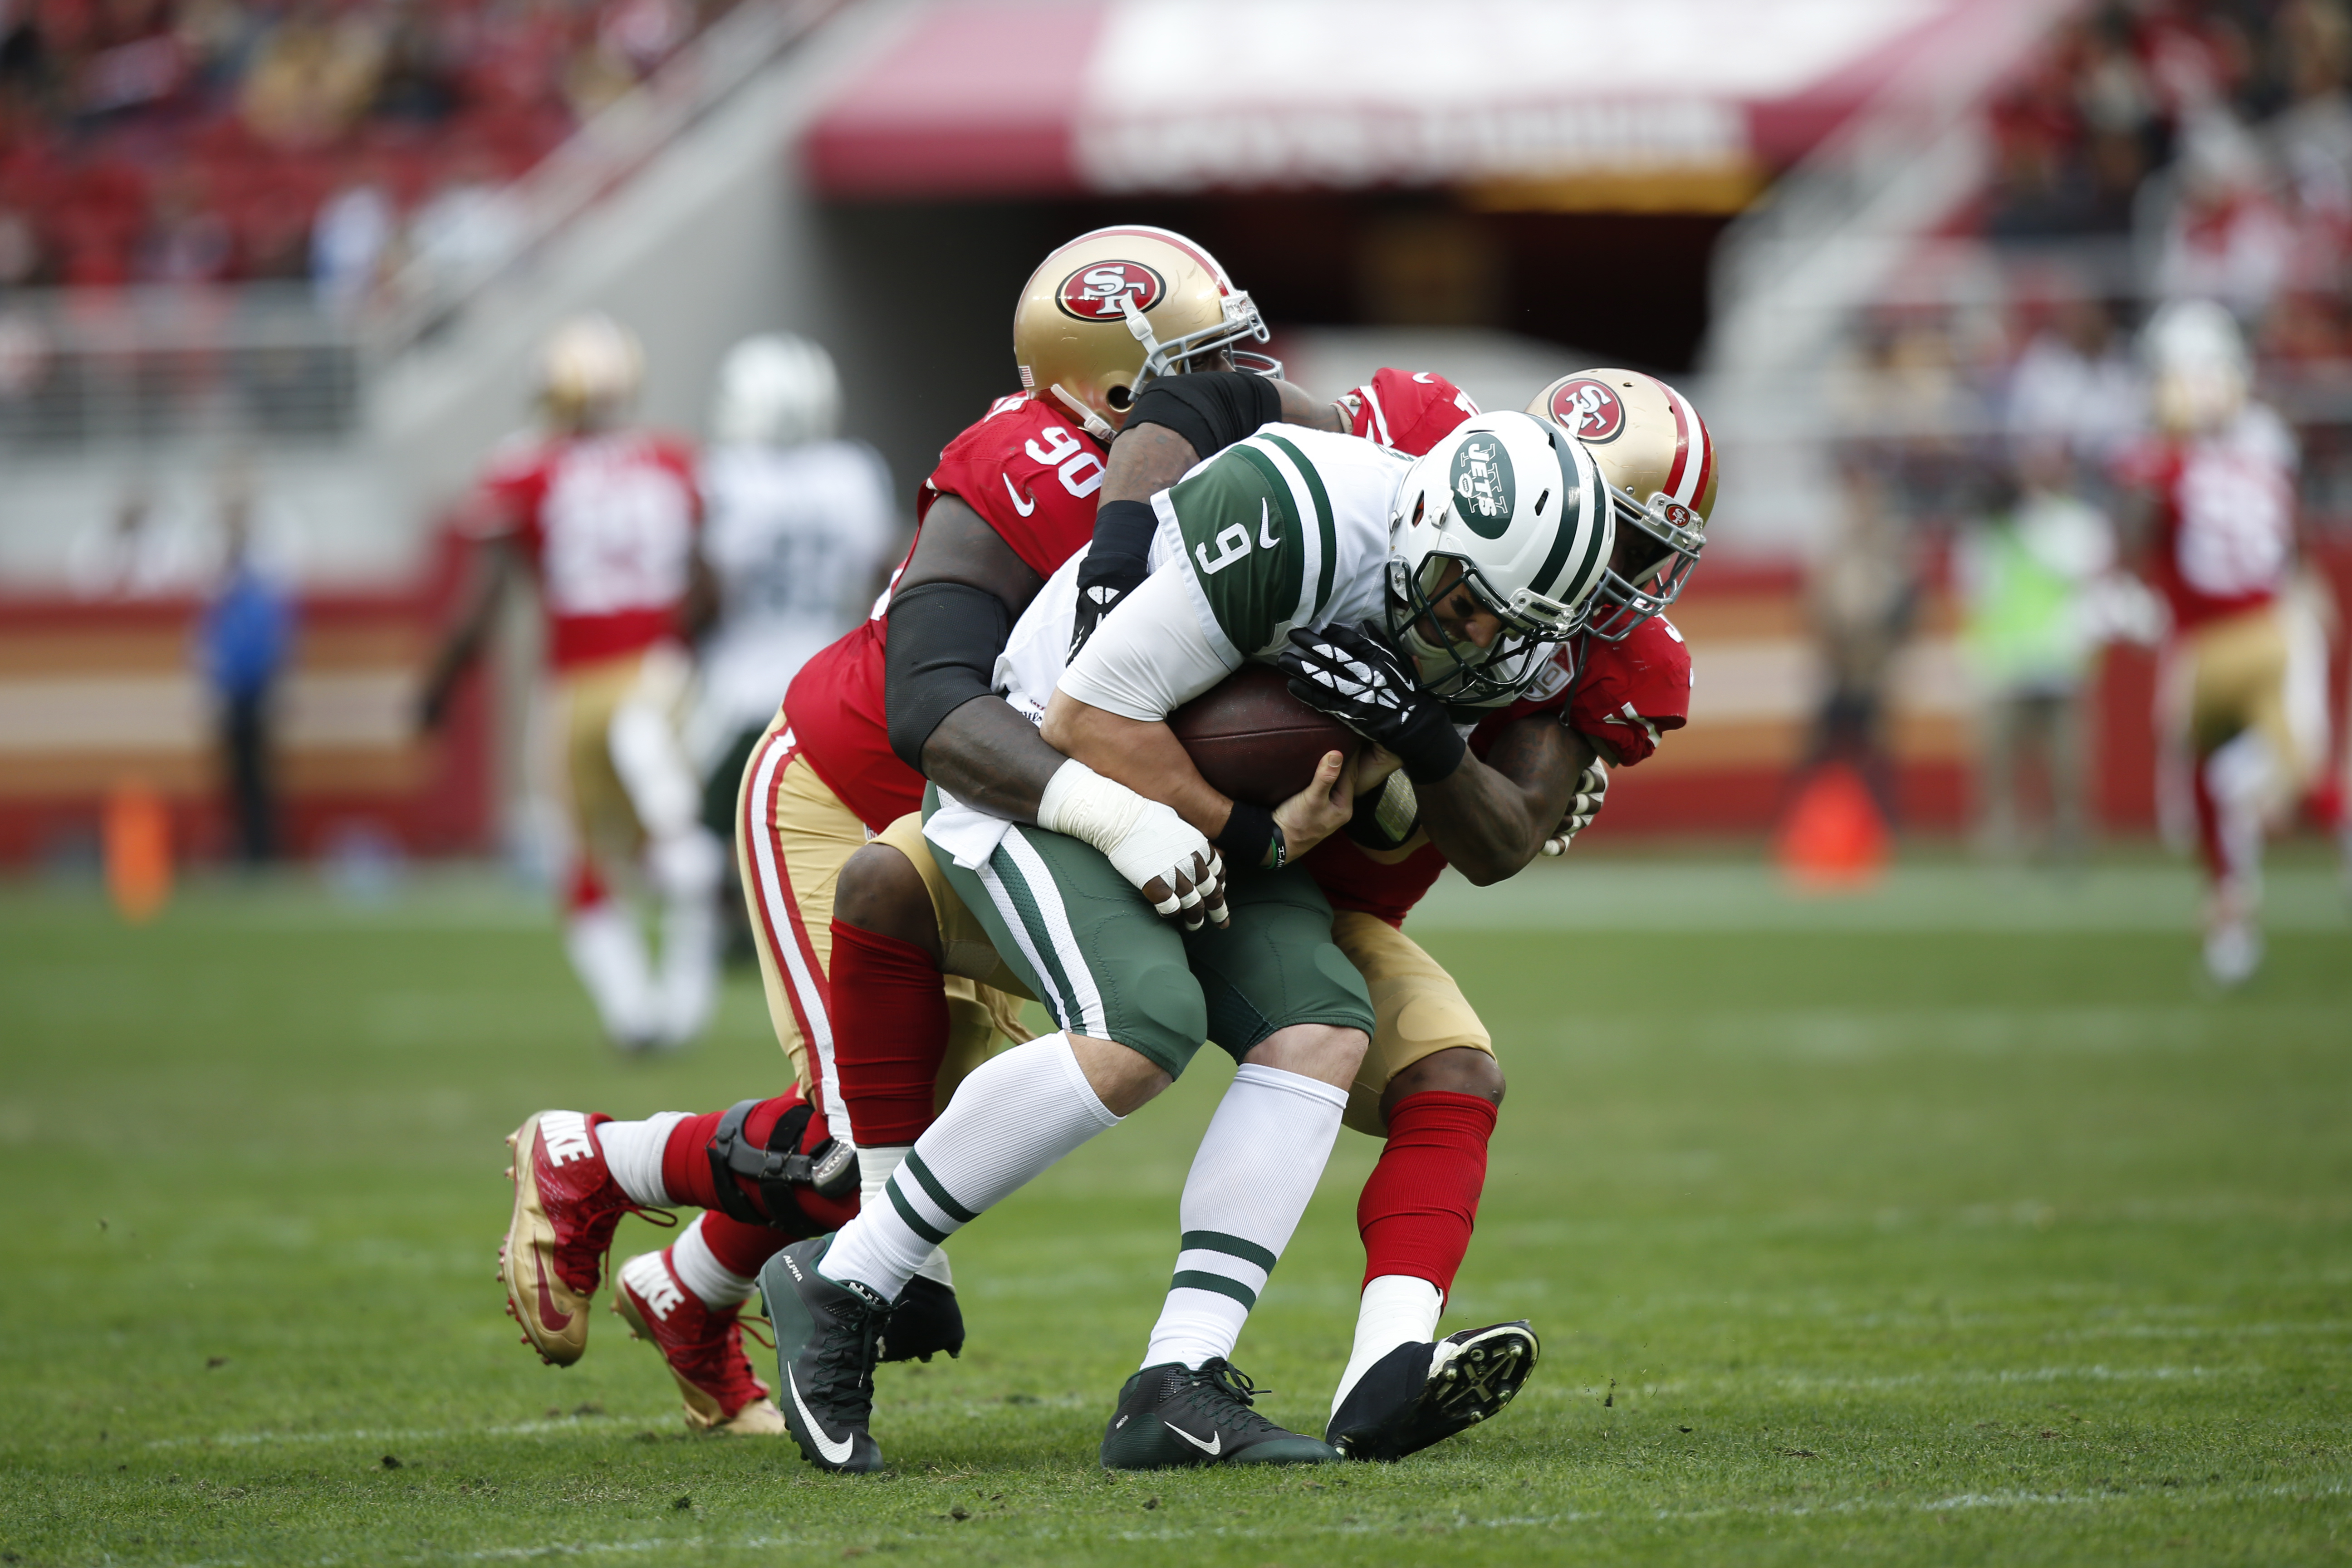 635802798-new-york-jets-v-san-francisco-49ers.jpg